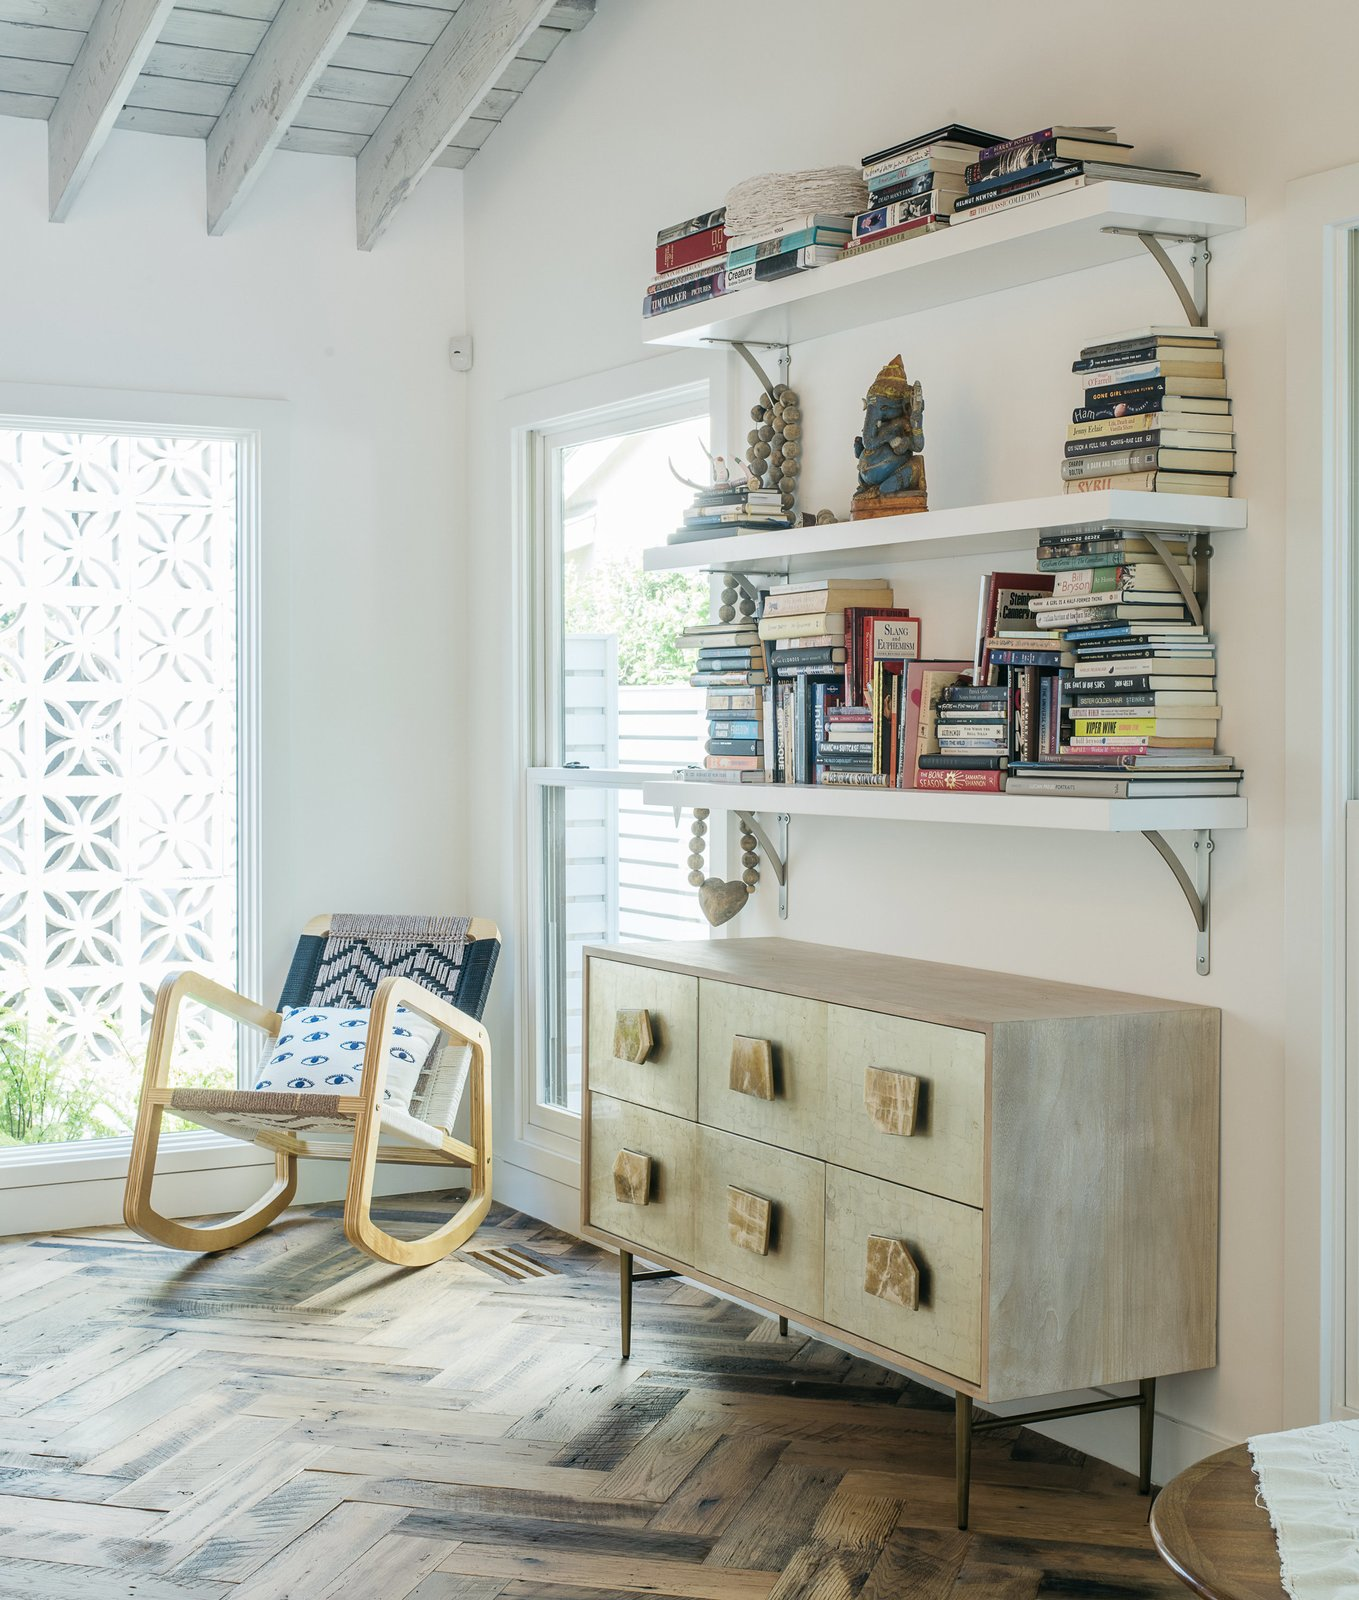 Broden gave the formerly low-ceilinged living room a high pitch and added more windows for light. For the floors, Lena chose salvaged oak hand-laid in a herringbone pattern. The Roar + Rabbit dresser is from West Elm.